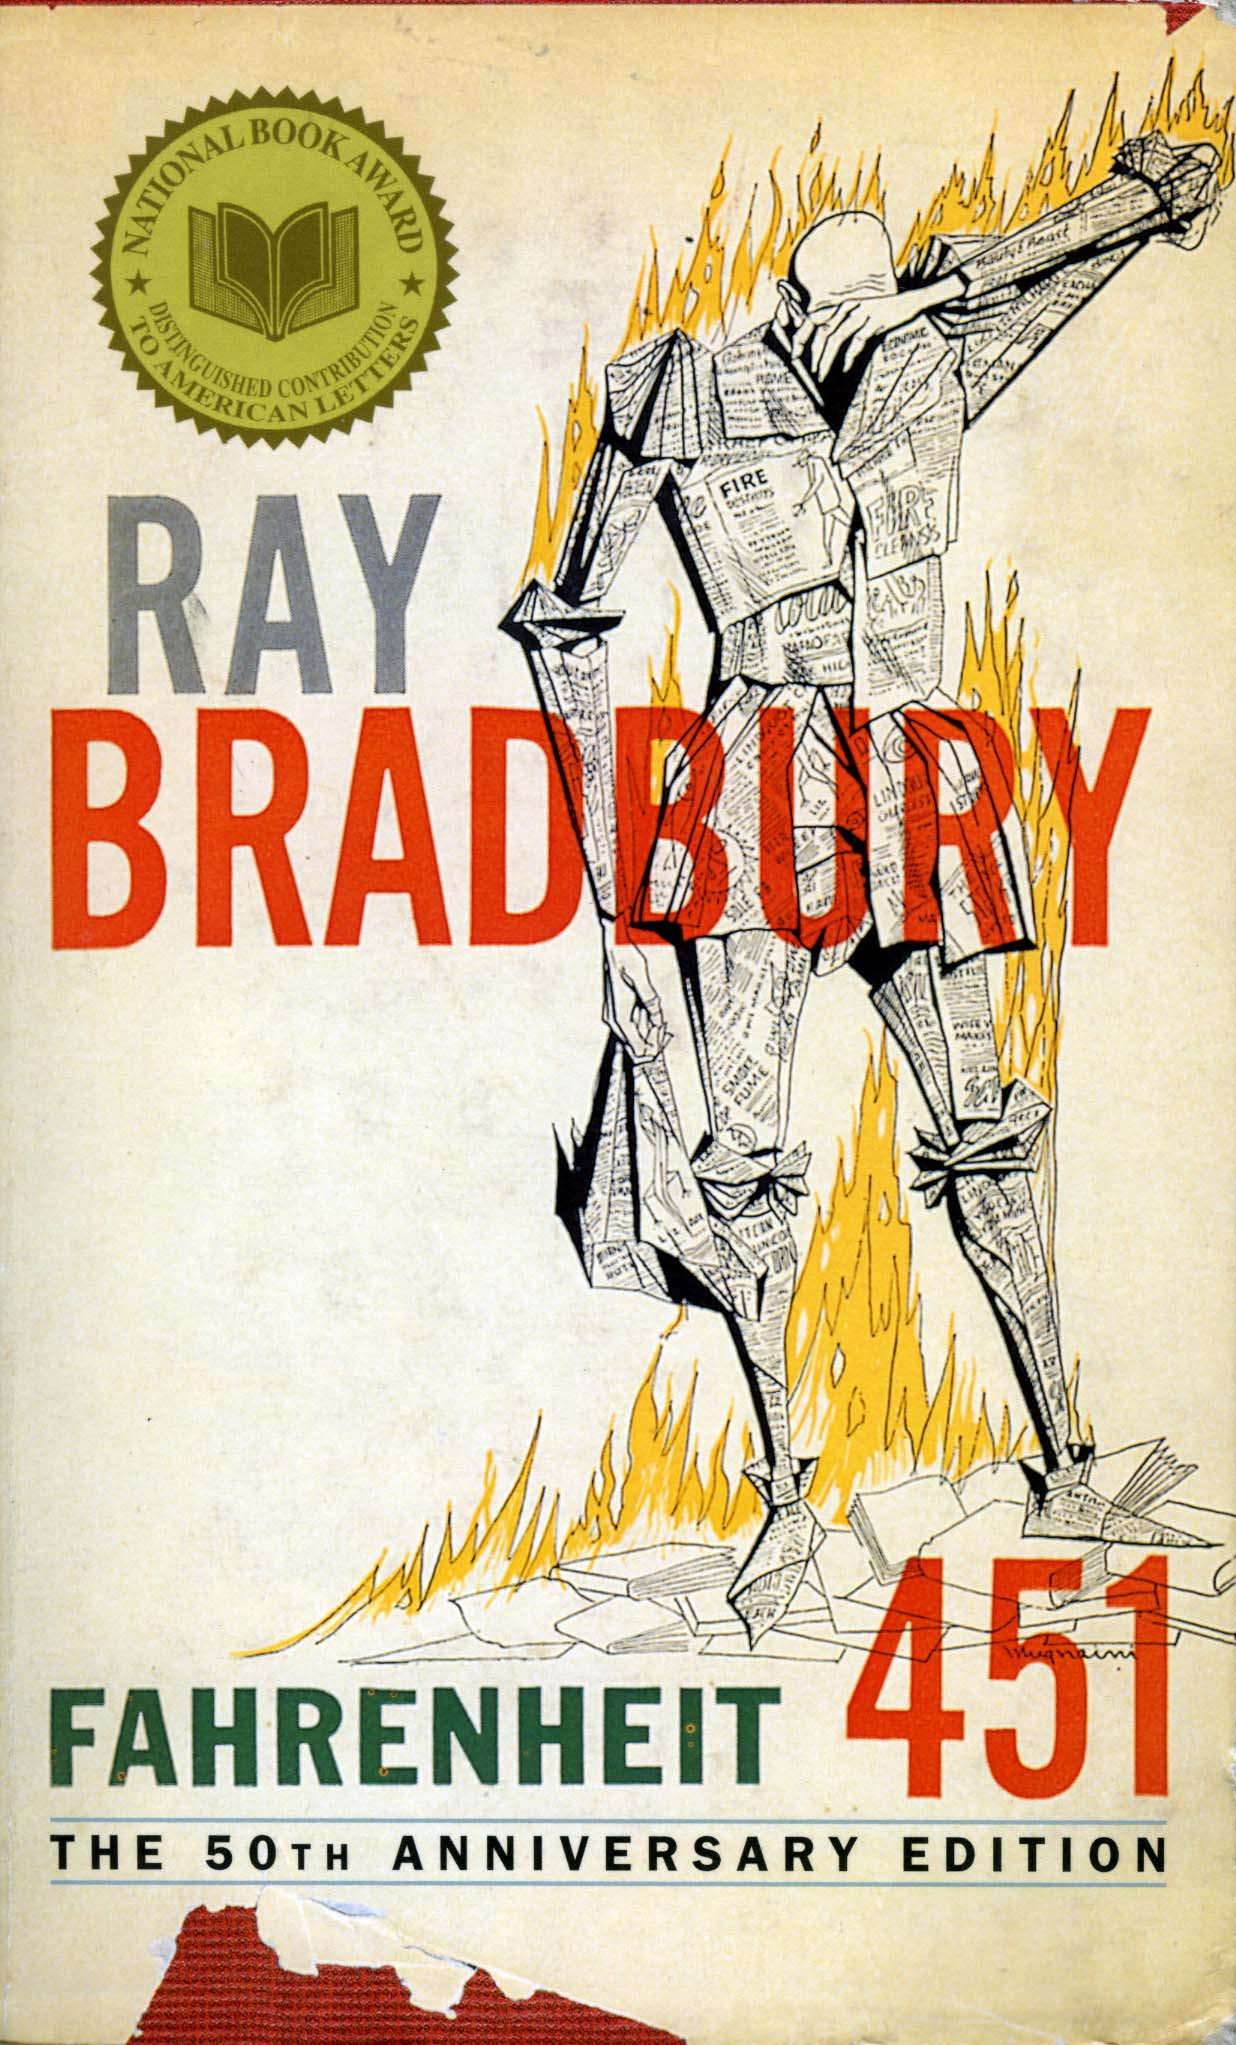 fahrenheit 451 book review essay In our present culture, where the government maintains a level of control in part through instilling media suspicion and increased talk of censoring—or at least defunding—the arts, ray bradbury's novel fahrenheit 451 resonates with alarming prescience first published in 1953, the book has .